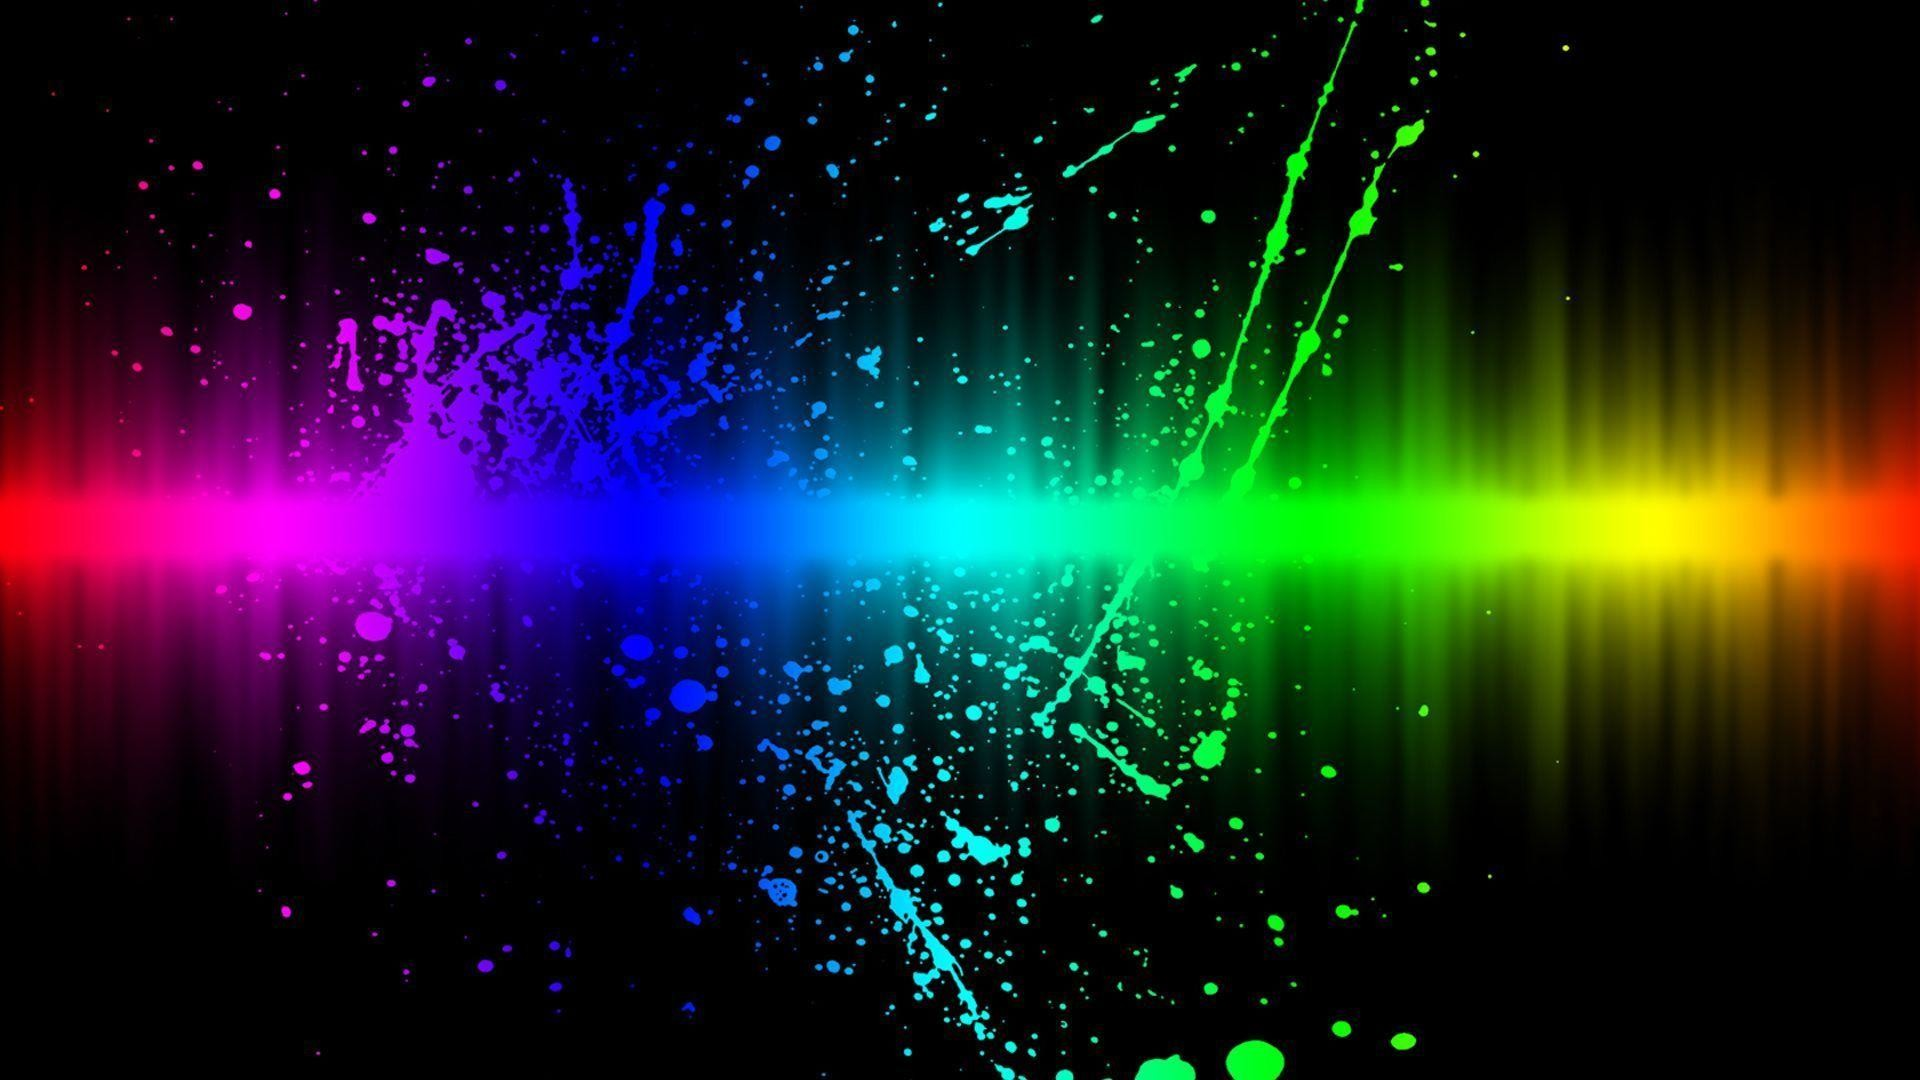 Cool Rainbow Backgrounds (53+ images)